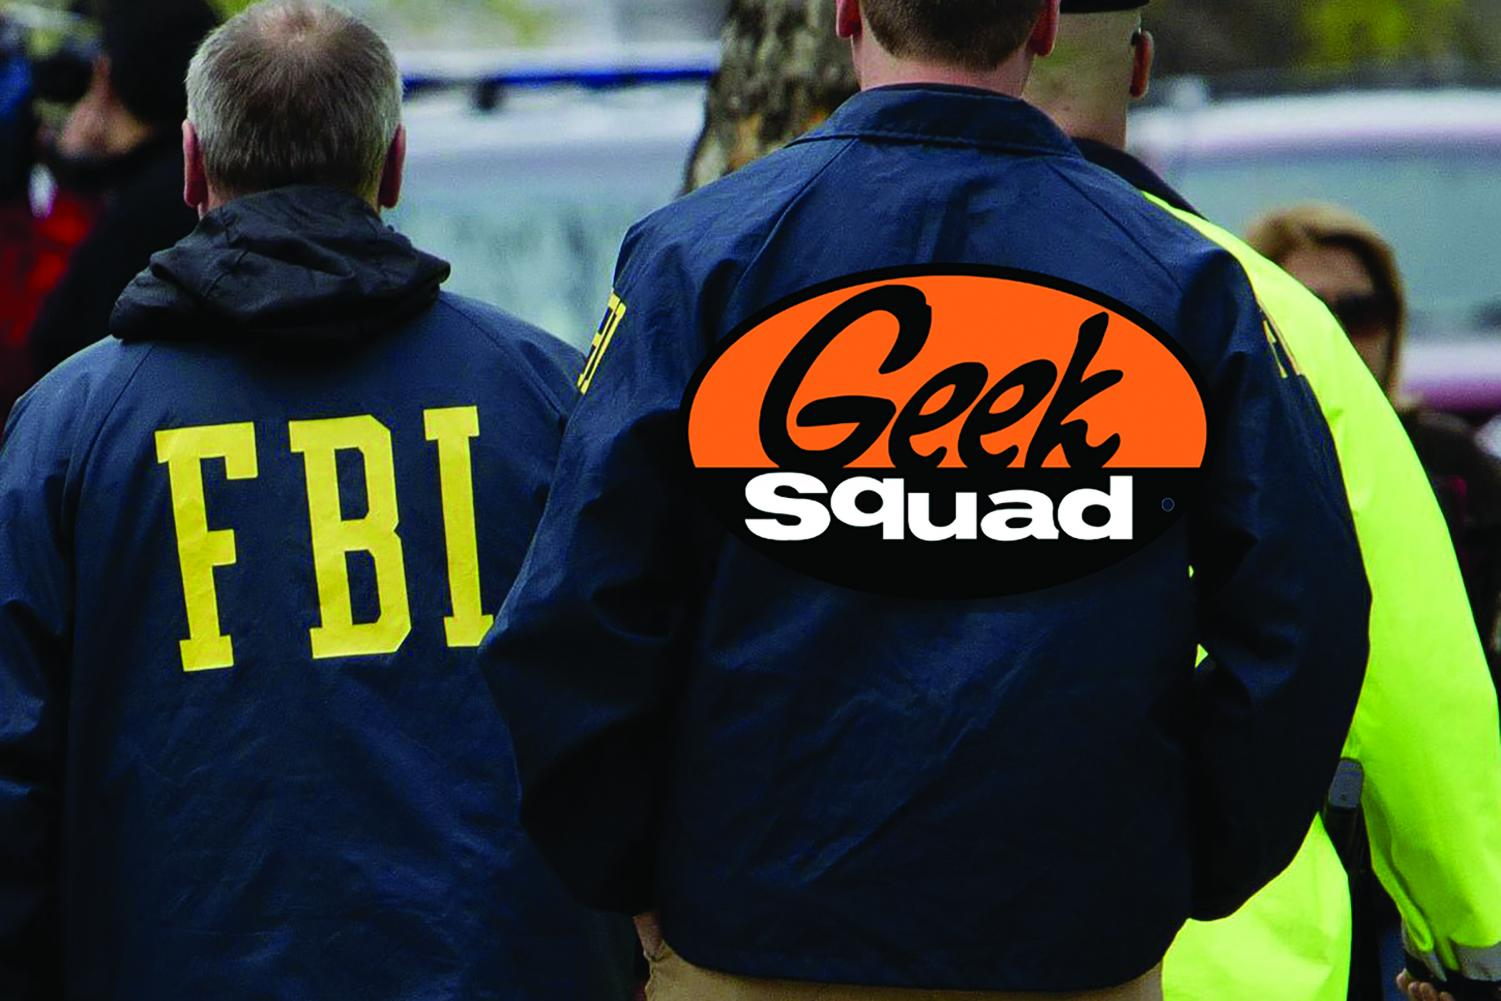 The relationship between the Geek Squad and FBI has already led to the arrest of one man last January.